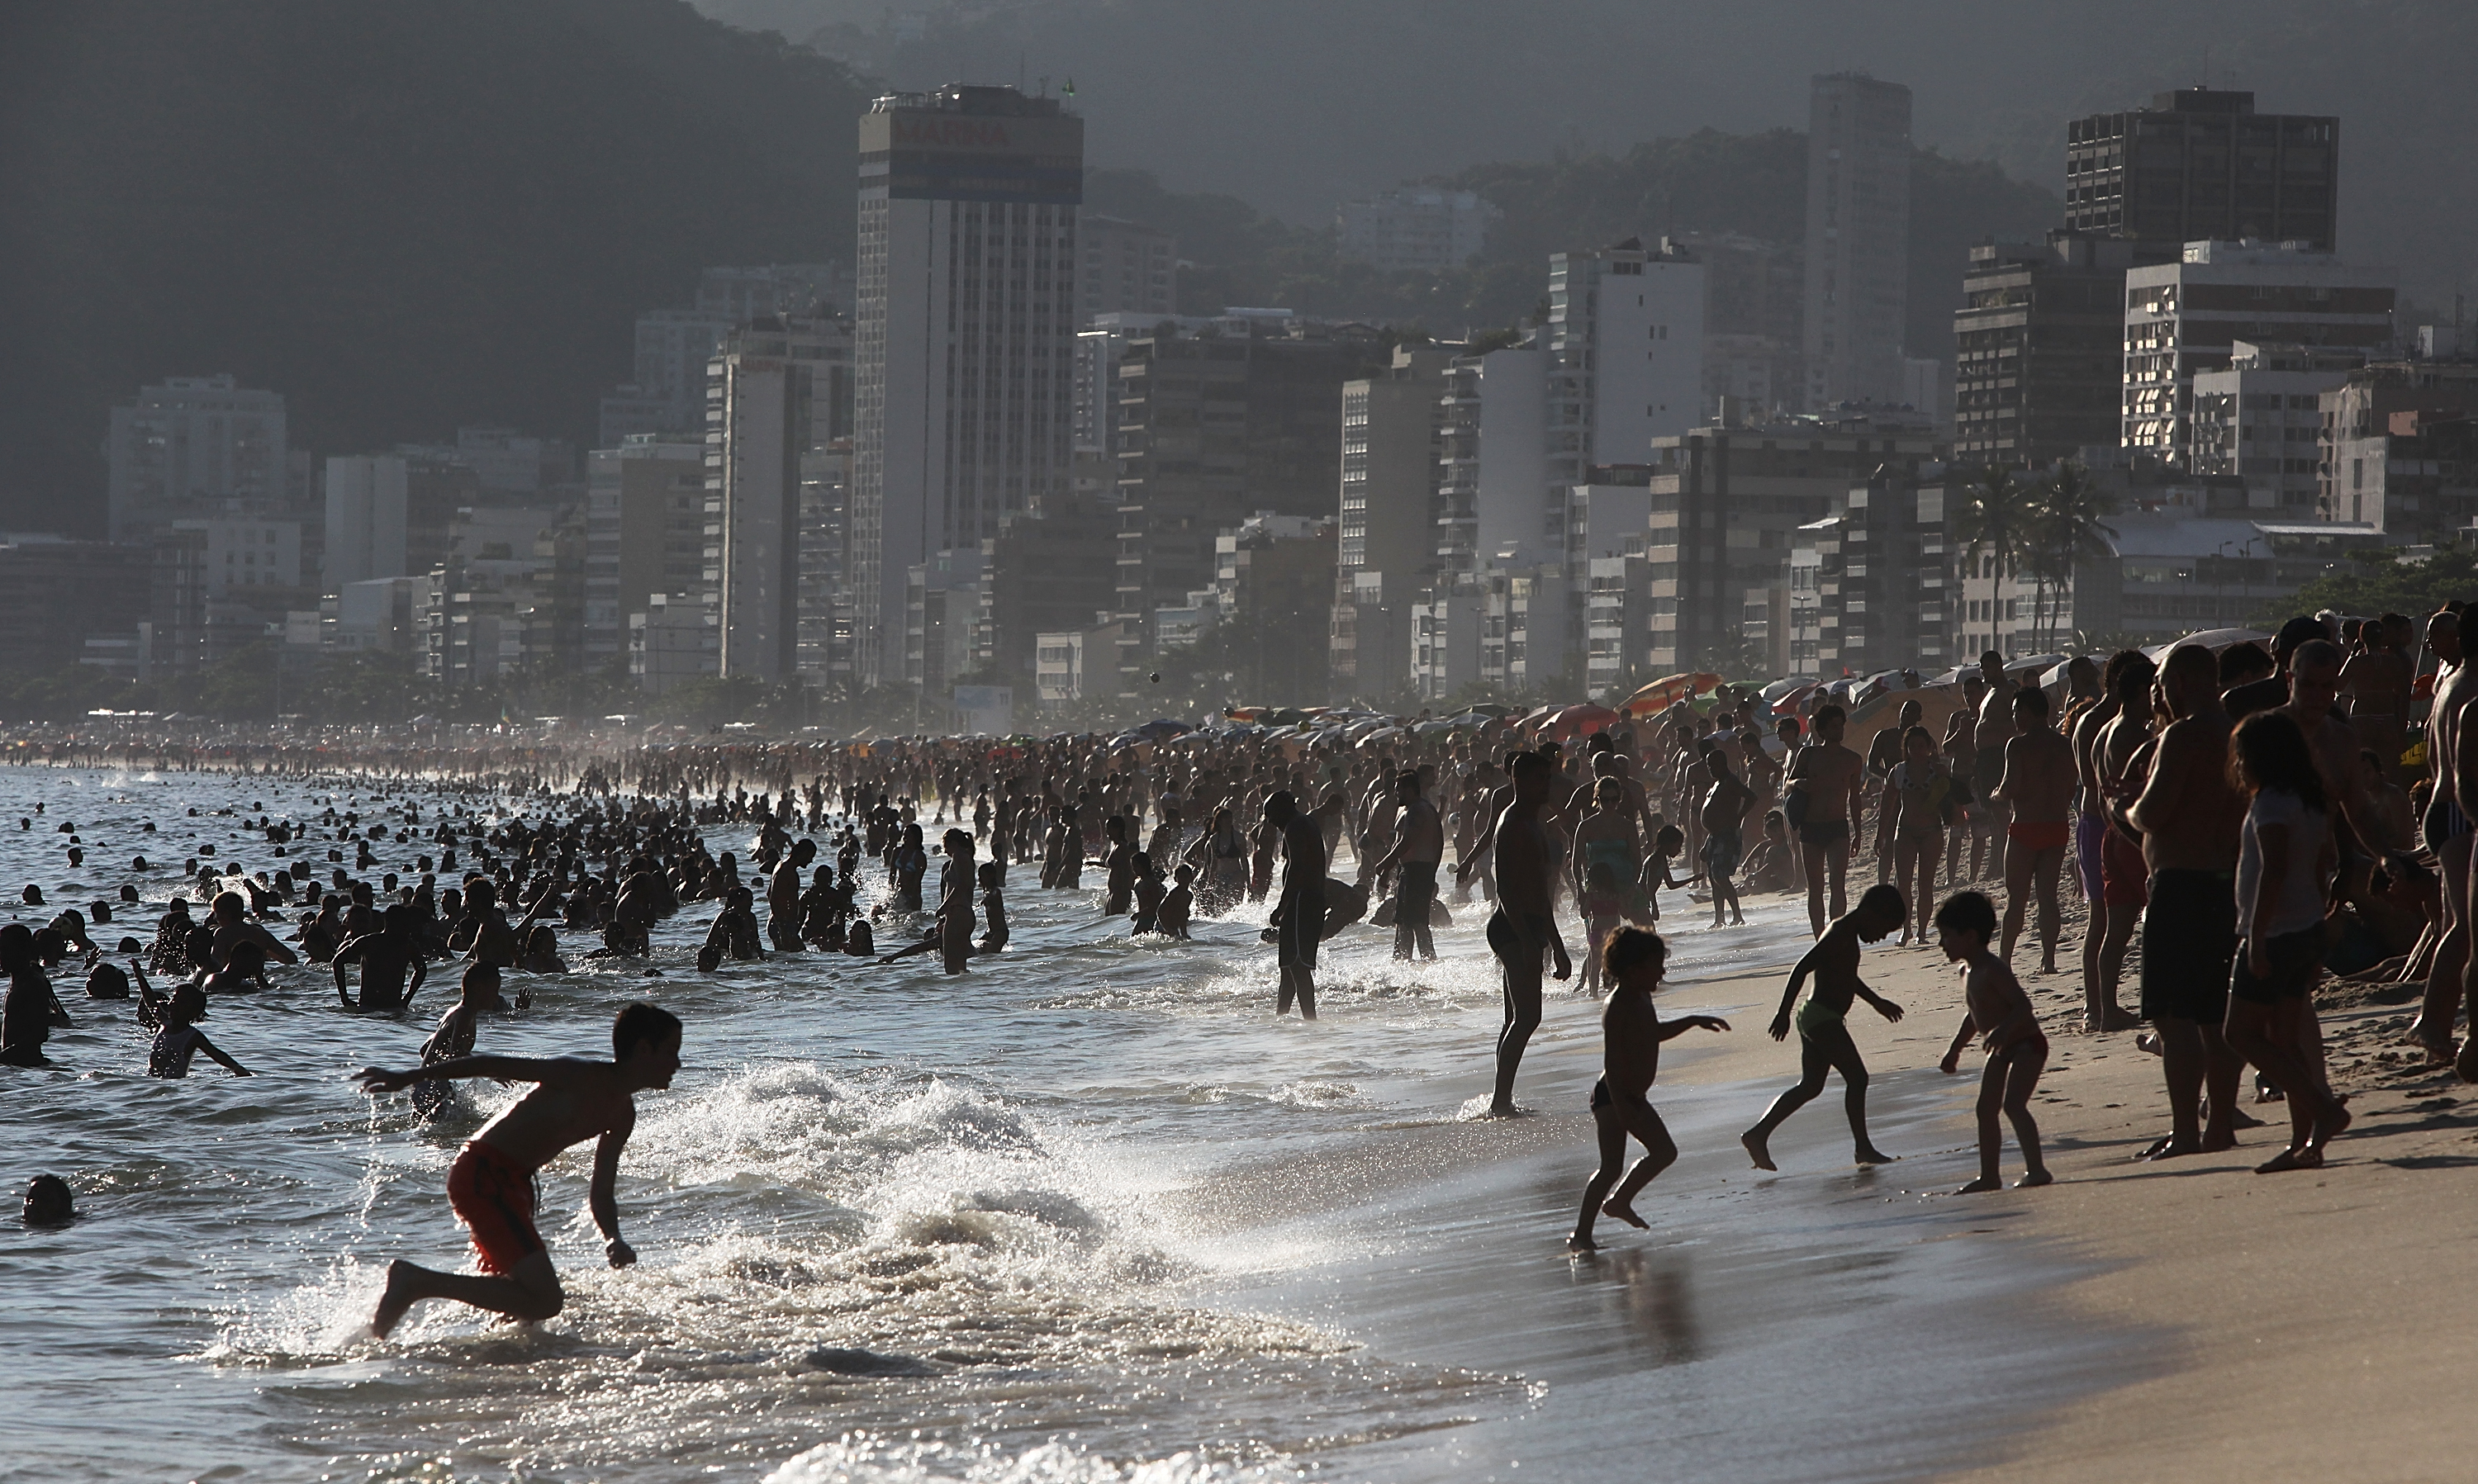 Crowds jam Ipanema Beach during a summer heat wave in the city on January 3, 2014 in Rio de Janeiro.